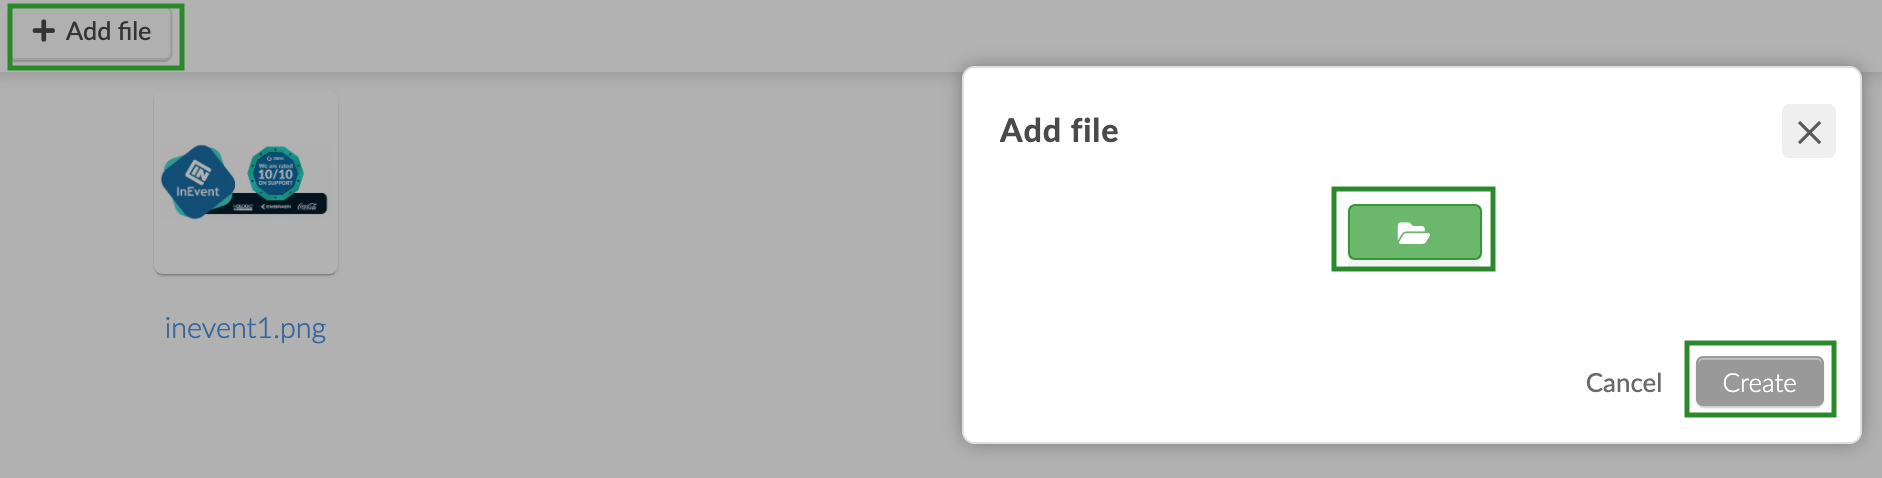 Screenshot of the steps to add a new file